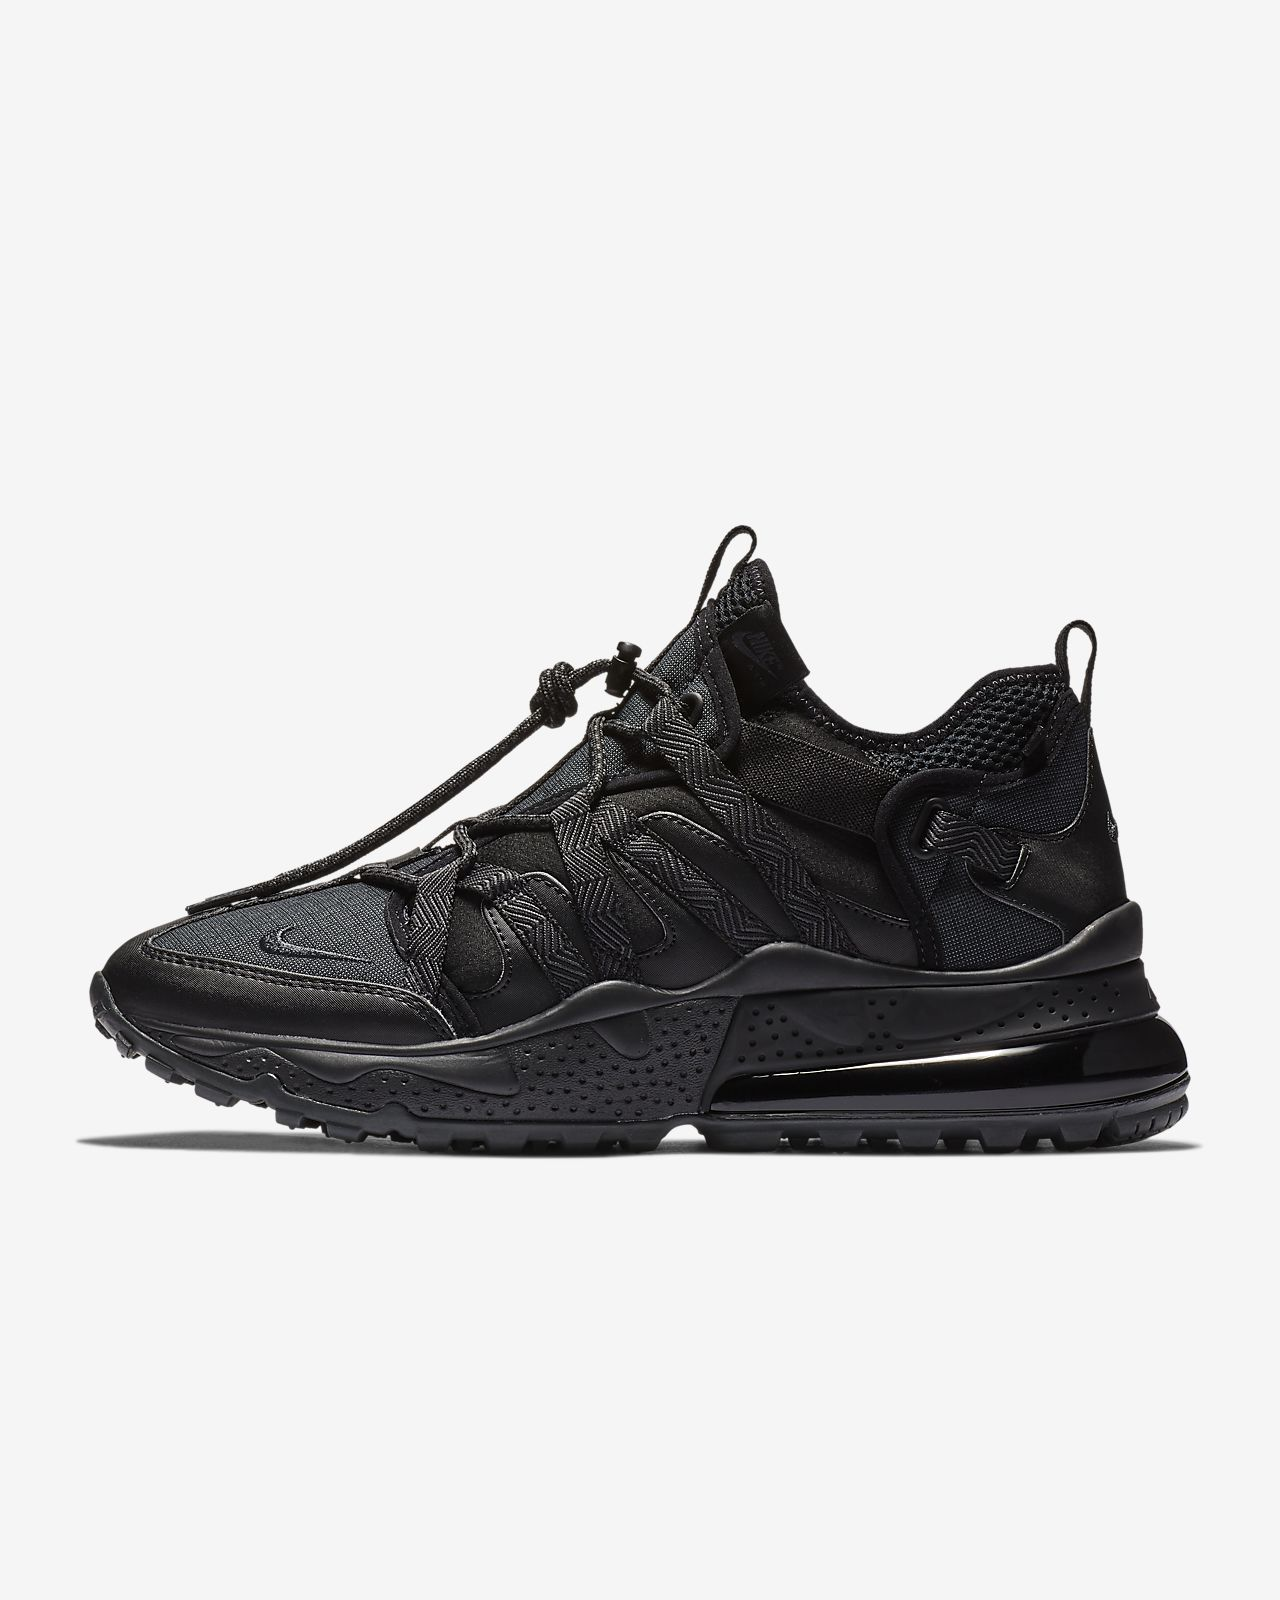 Nike Air Max 270 Bowfin Herrenschuh